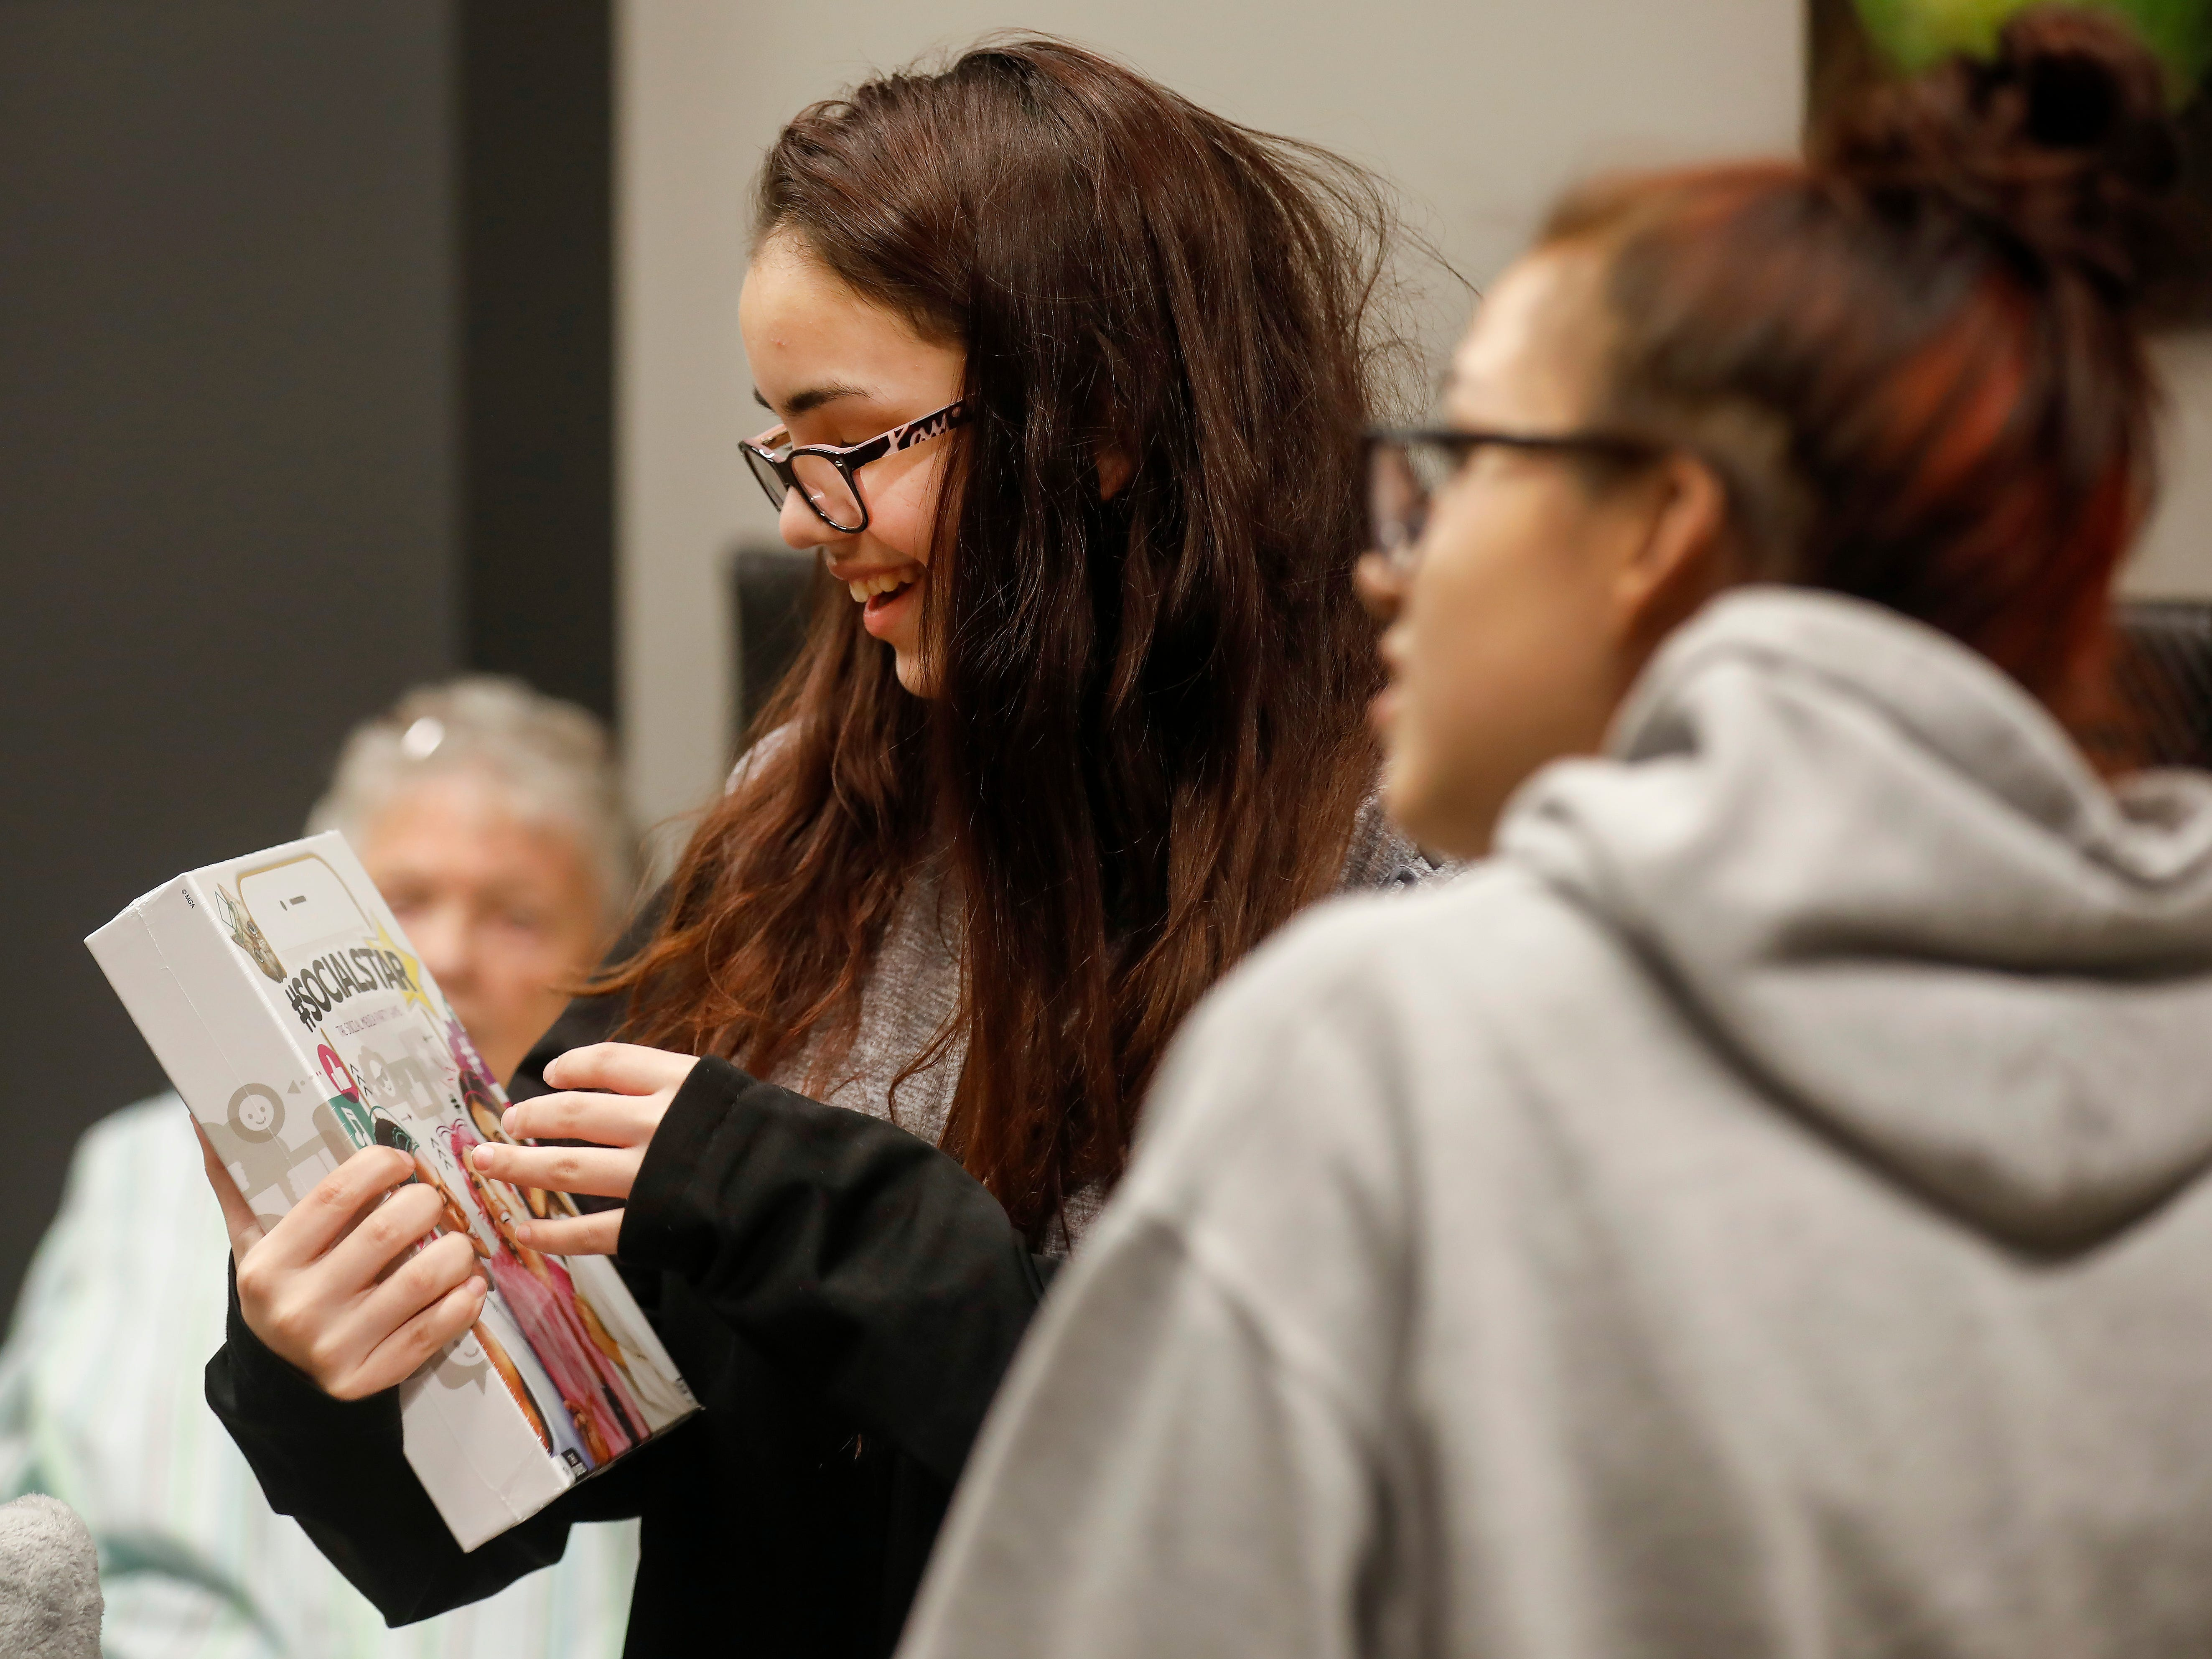 Abigail Sahagun, center, reacts as she looks at gifts that were given to her and her sisters by employees of J.D. Byrider on Wednesday, Dec. 19, 2018. The Sahaguns' grandmother, Barbara Foster, was killed during a road rage incident on Nov. 20.